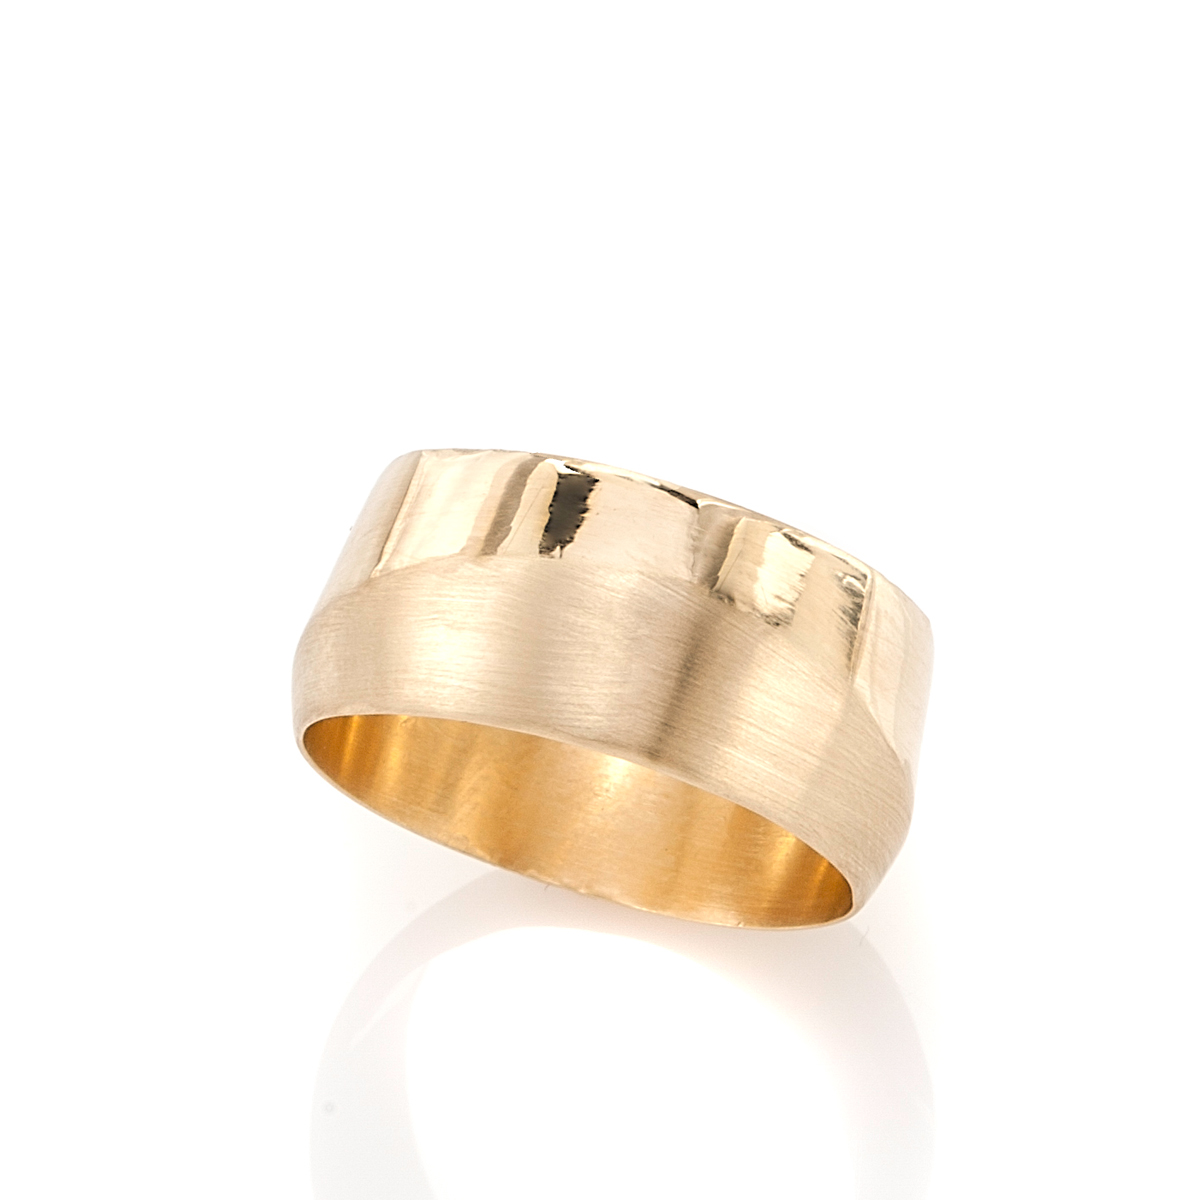 A wide gold ring